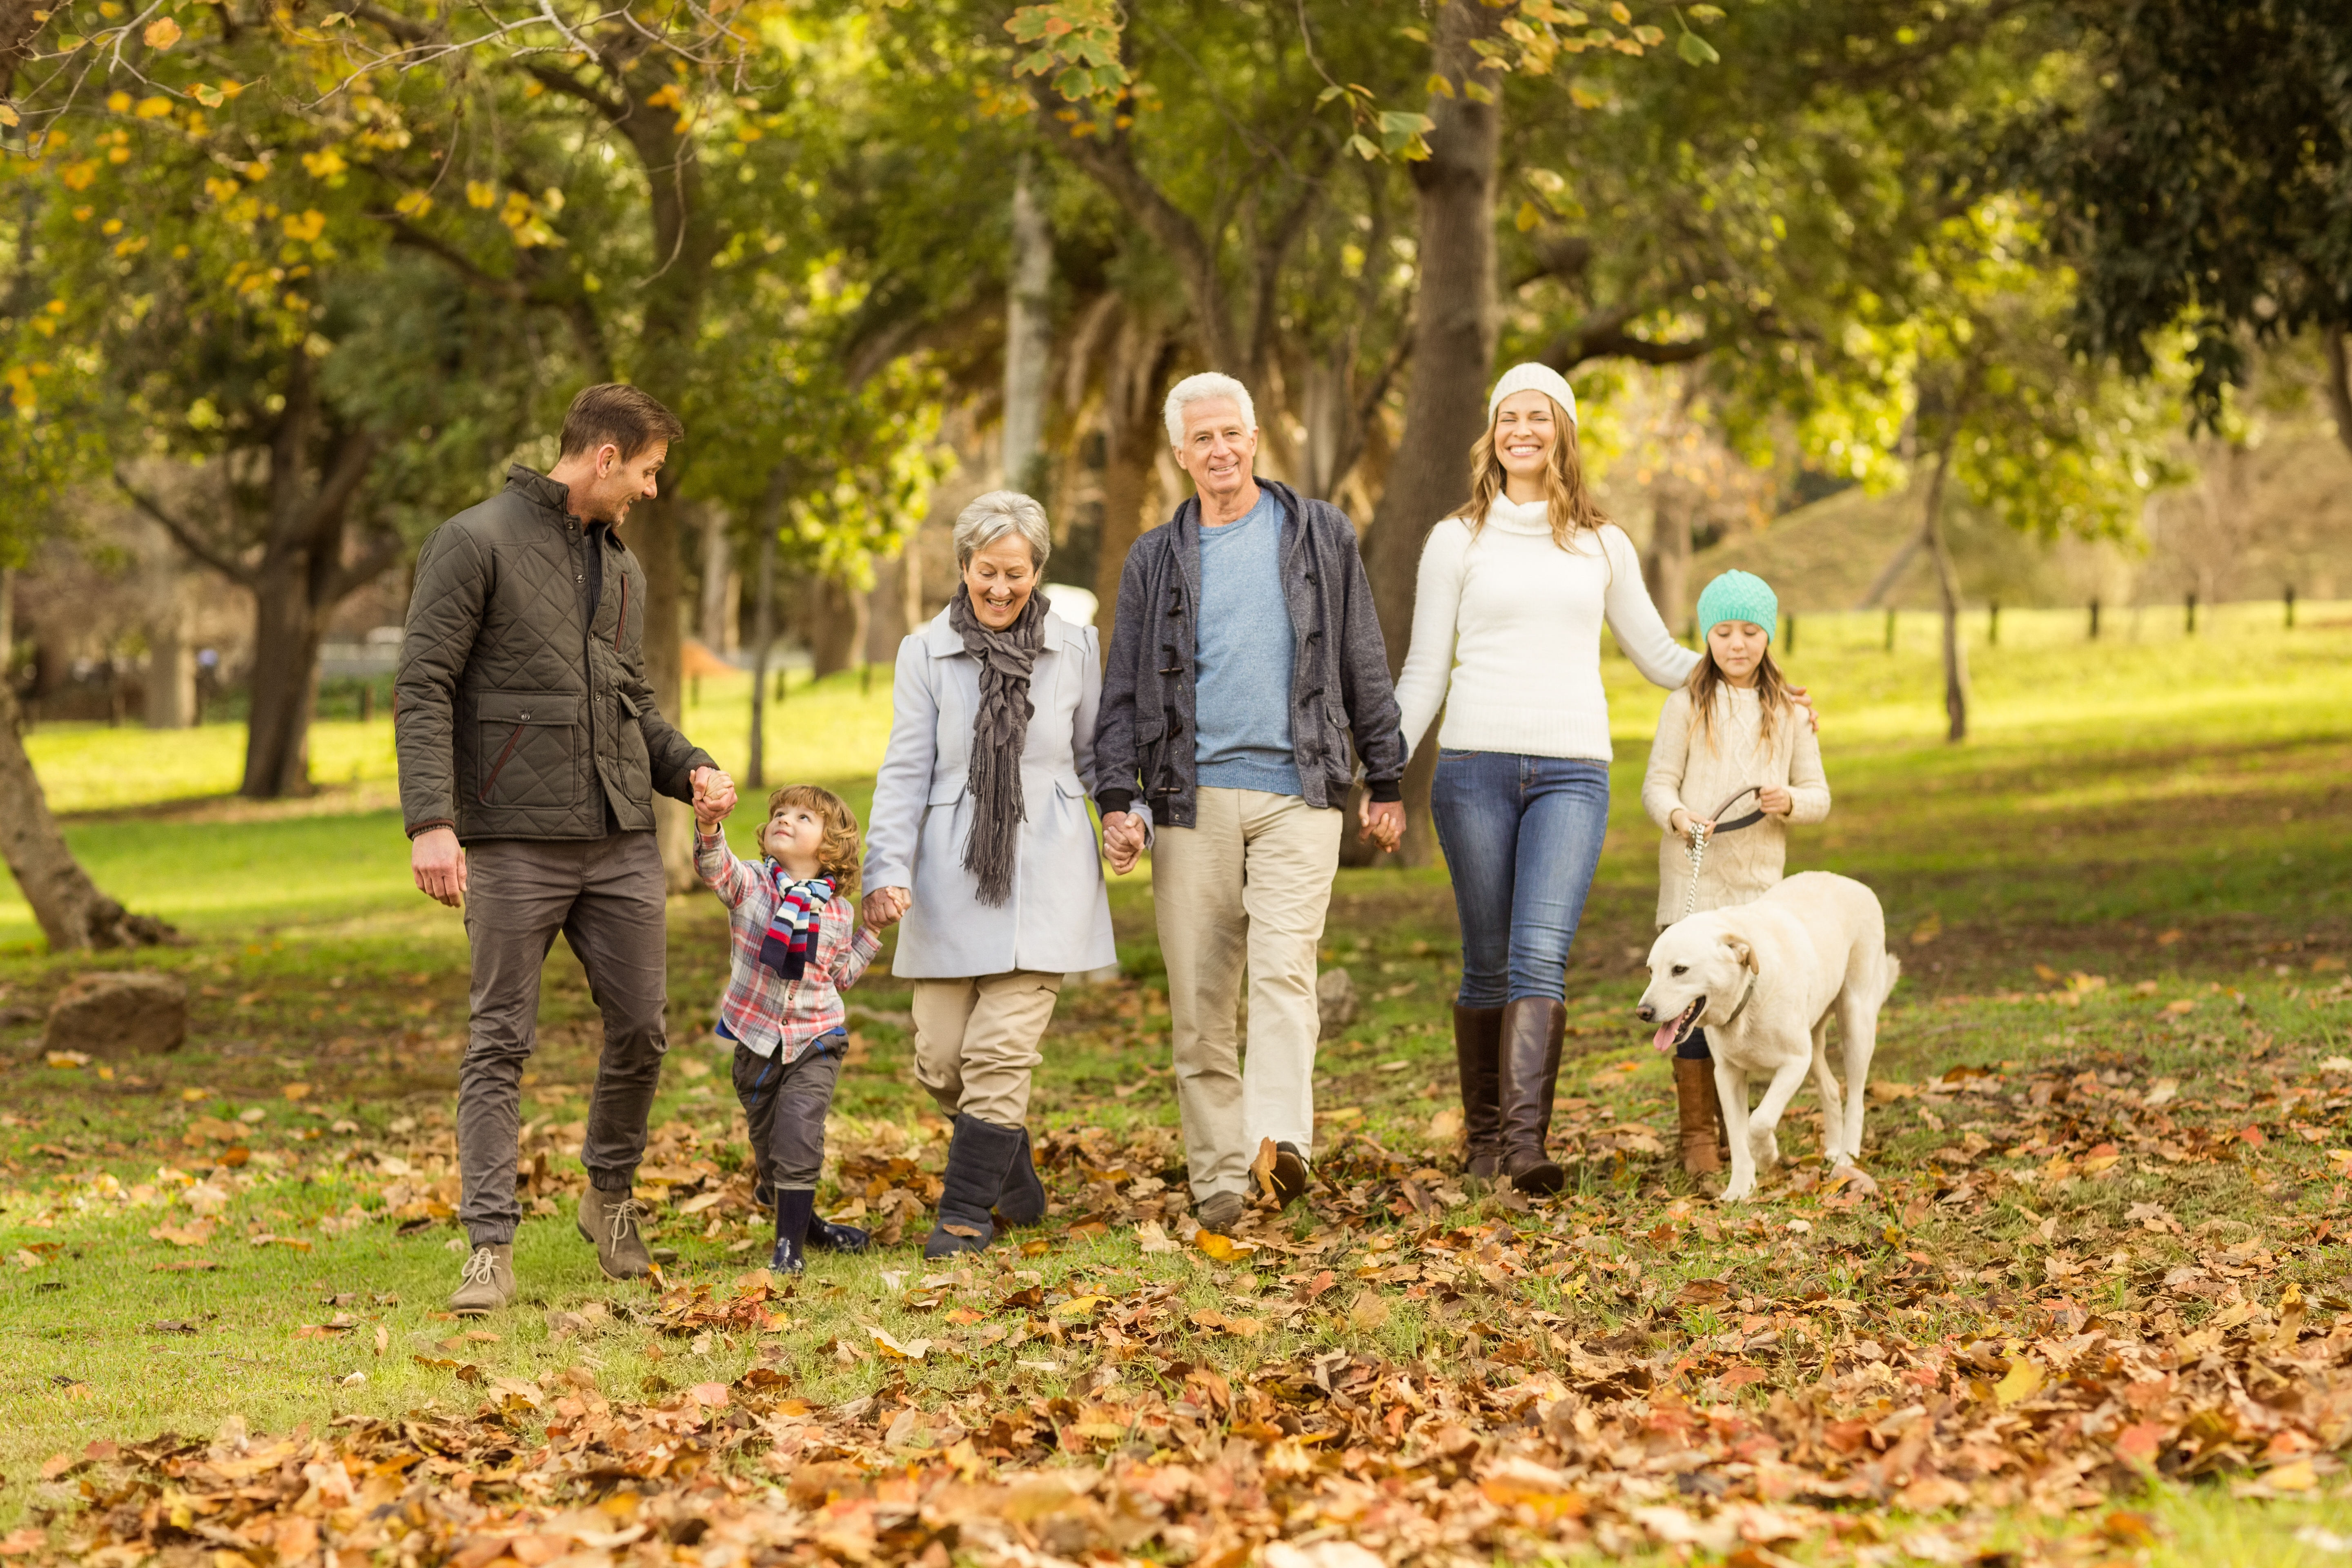 Smiling extended family walking together on an autumns day